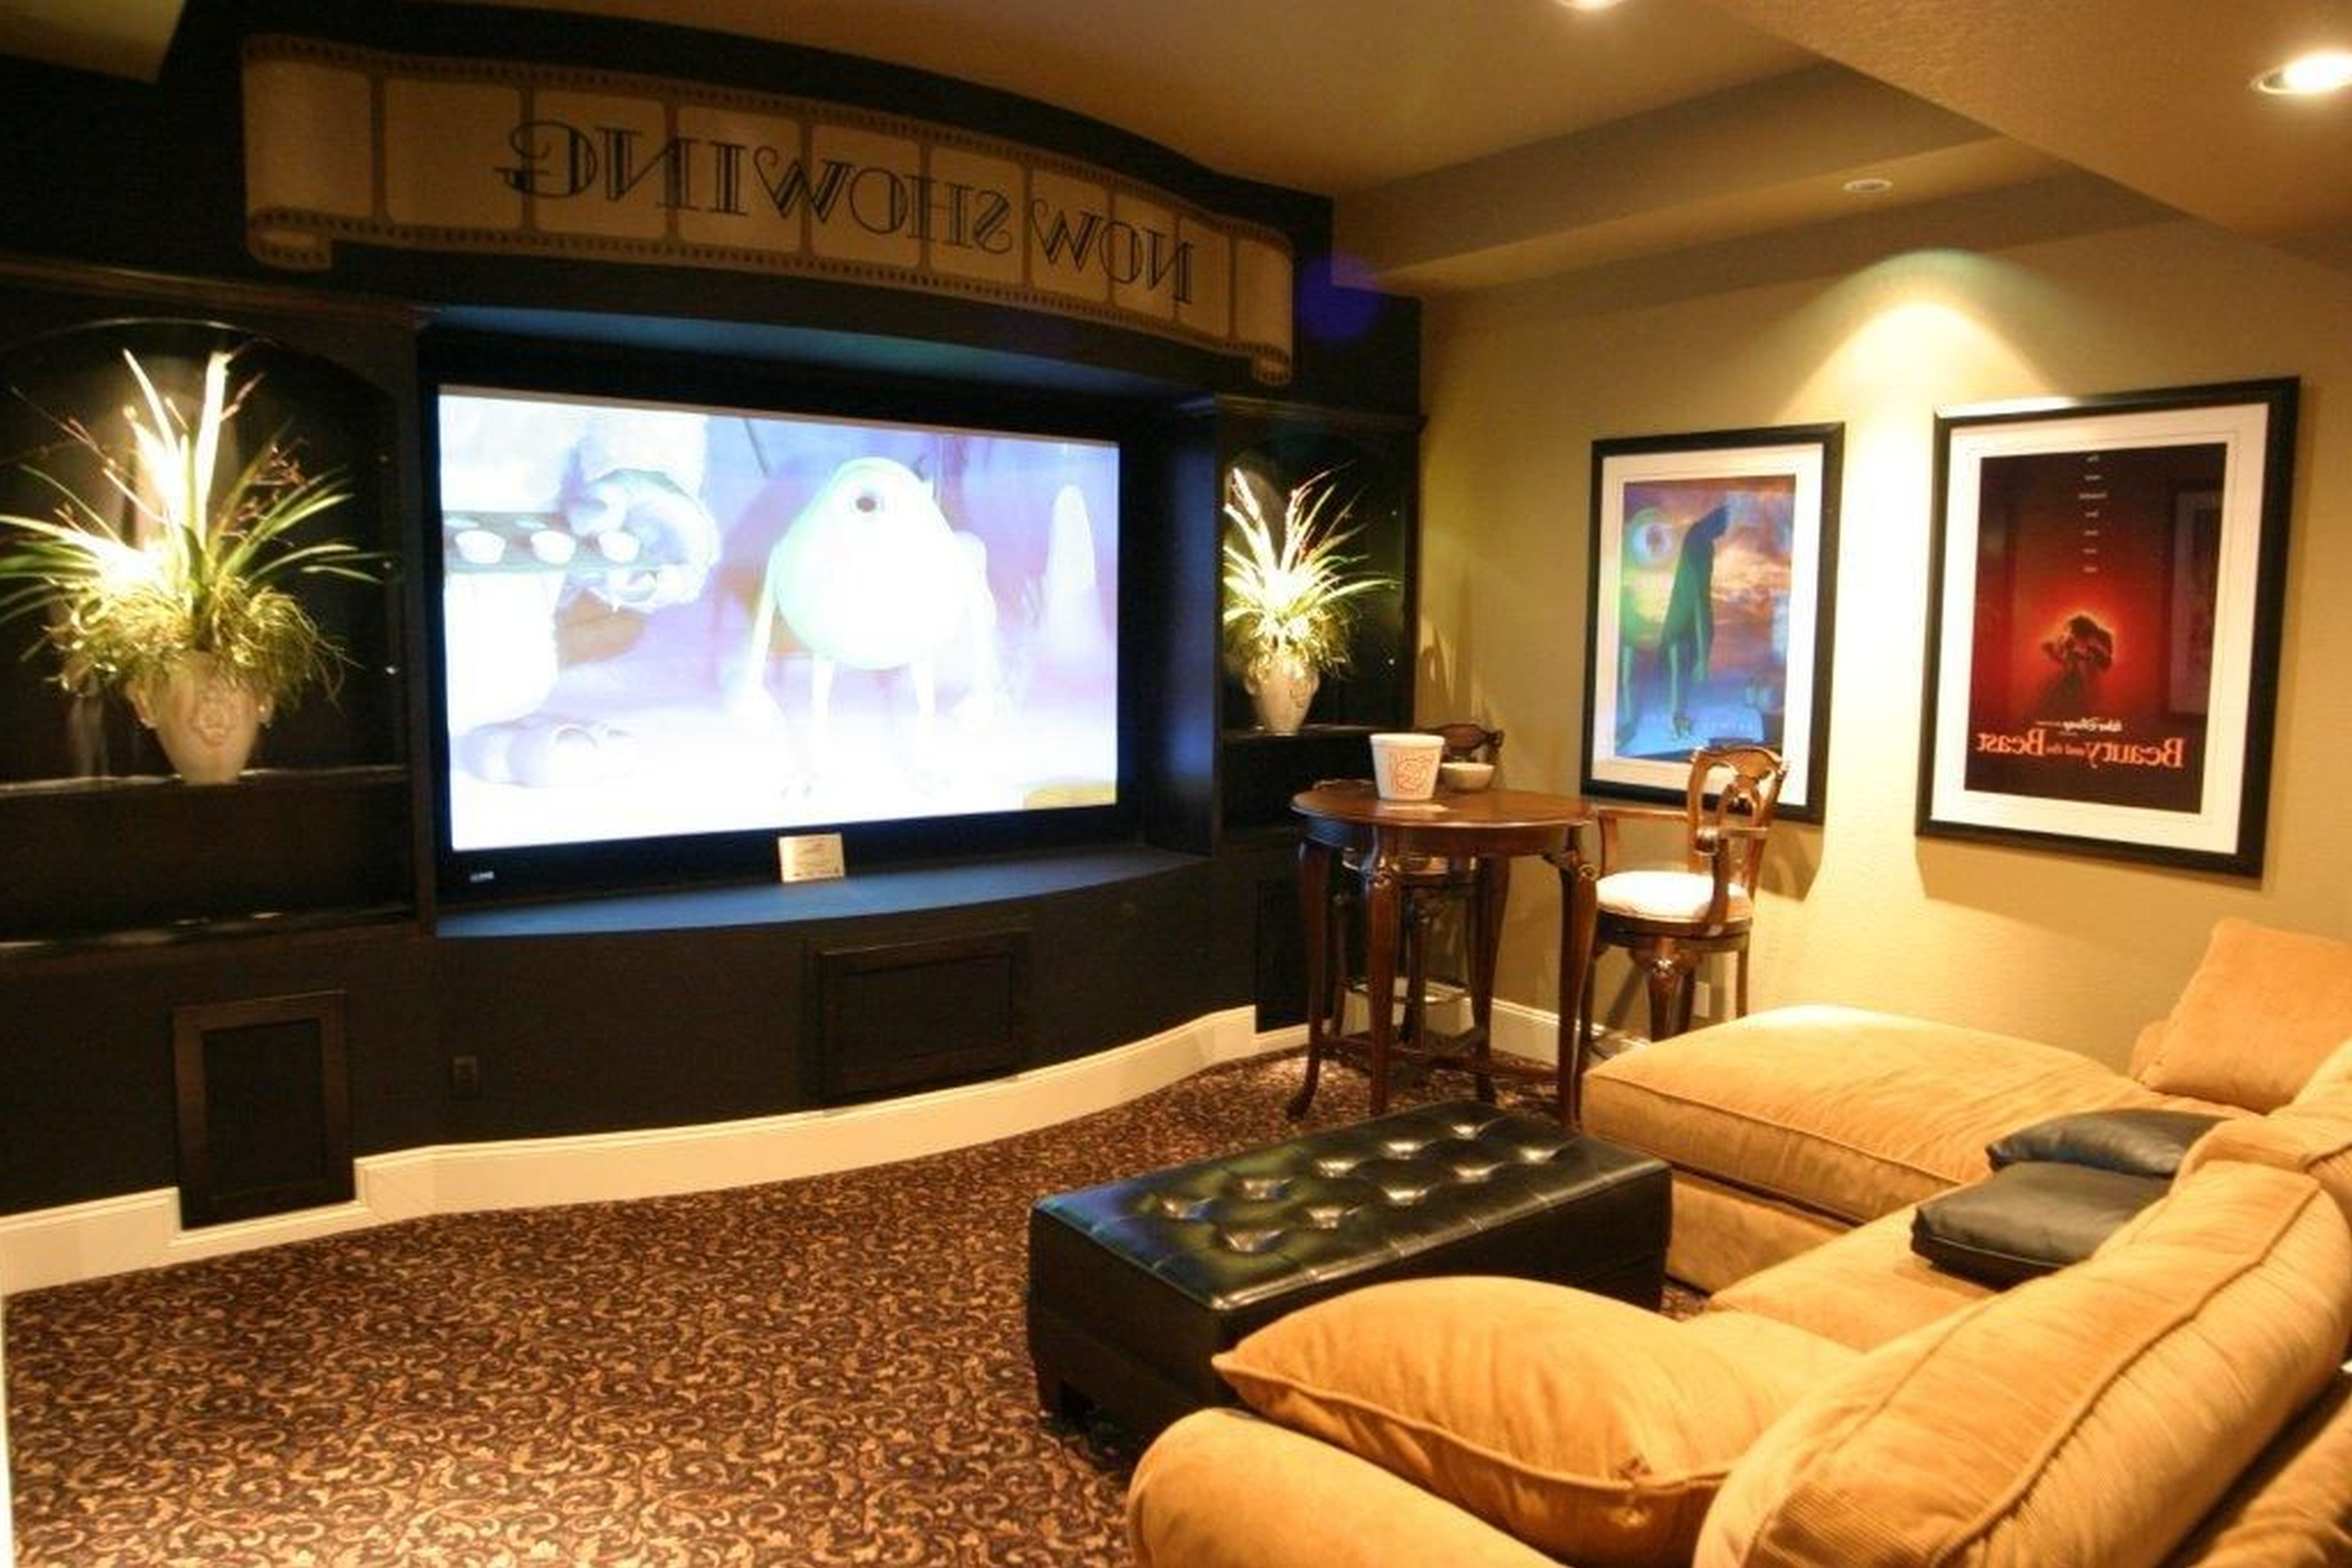 Media room using basement decorating ideas basement ideas Ikea media room ideas